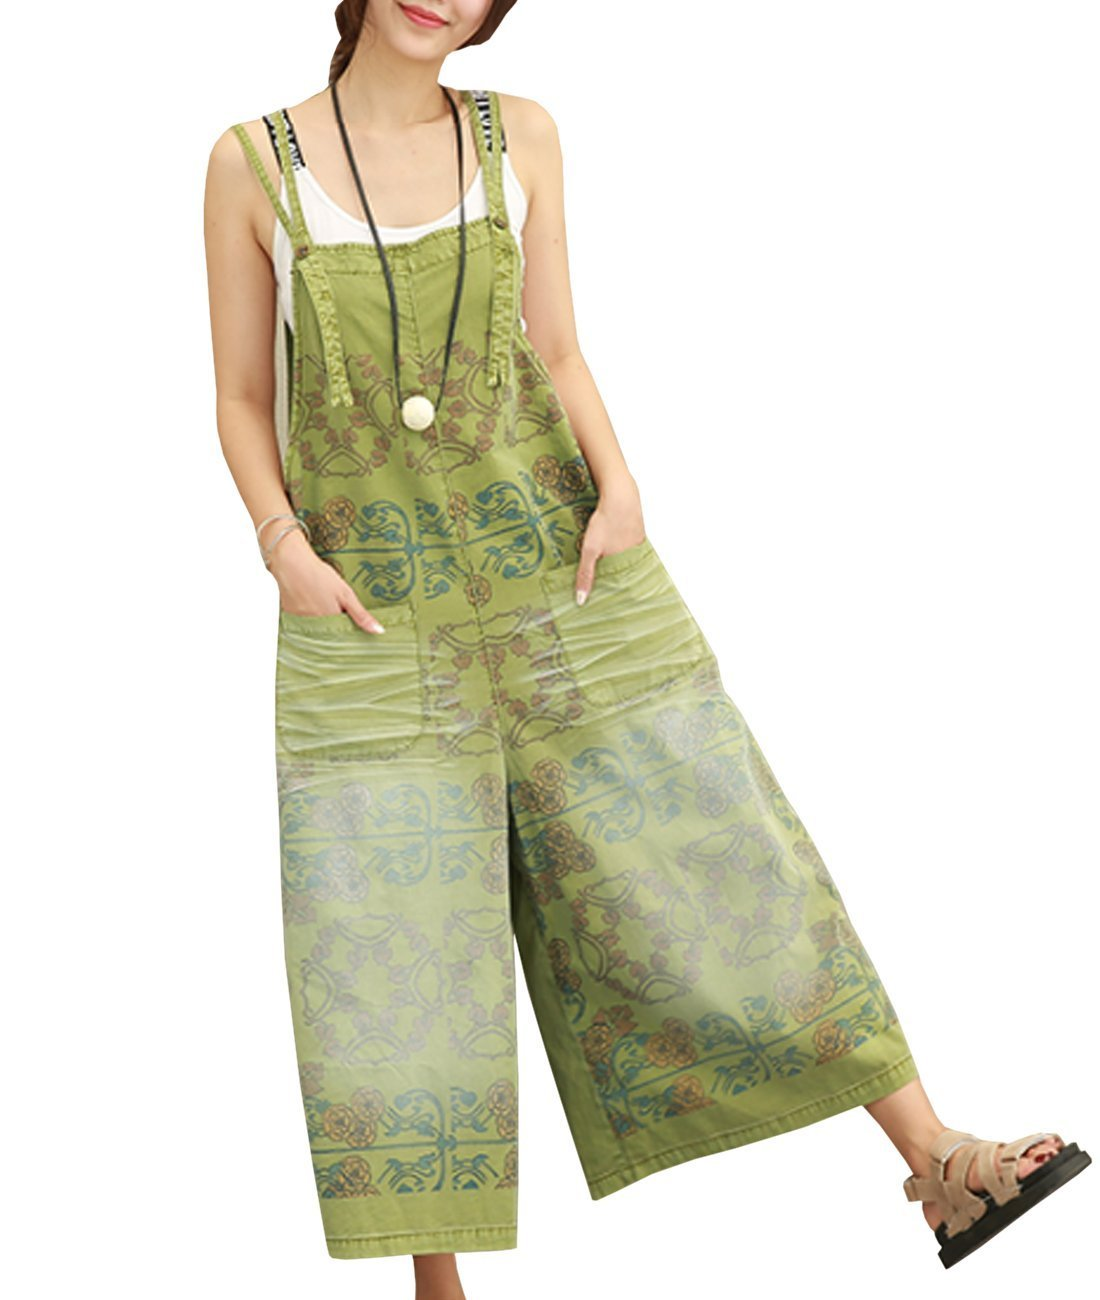 YESNO PE5 Women Loose Cropped Pants Overalls Rompers 100% Cotton Casual Floral Printed Distressed Boyfriend Wide Leg/Pockets, Pe5 Green, Medium